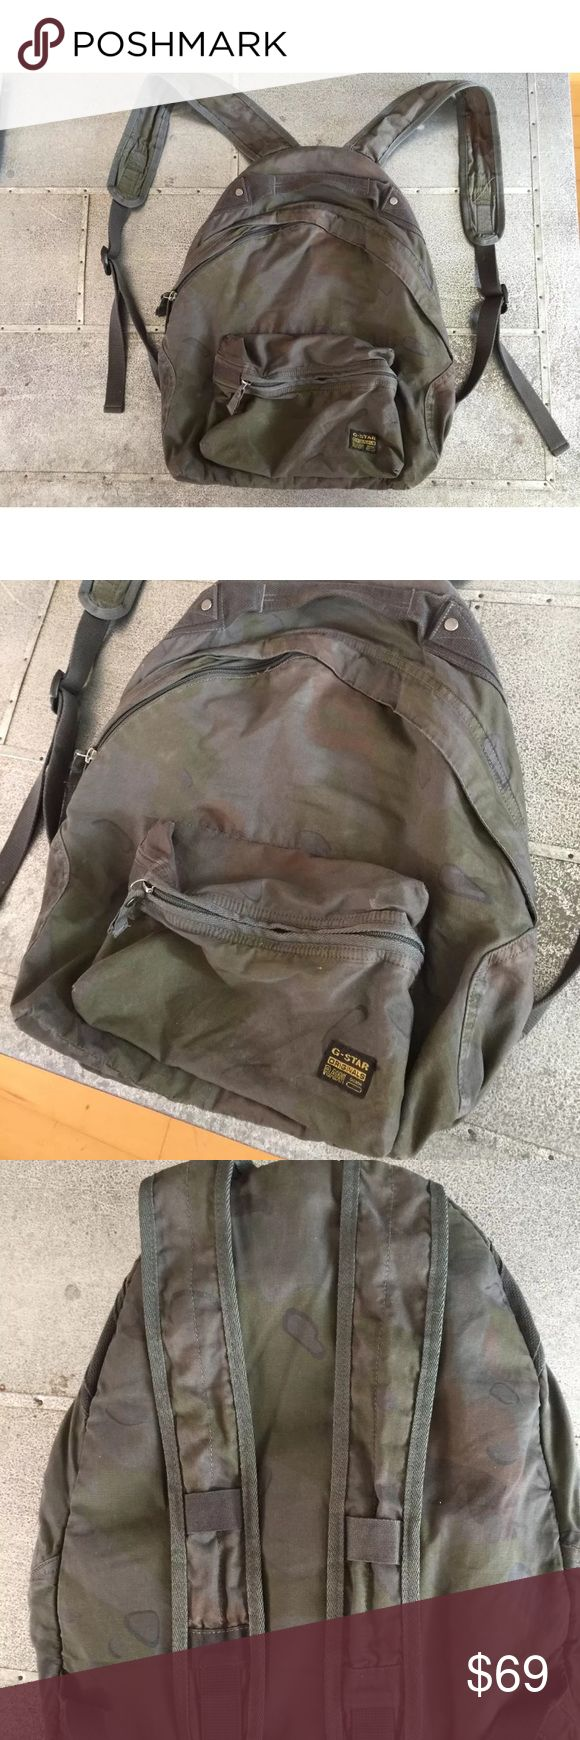 G STAR RAW backpack Up for sale is a nice G Star camo backpack. This pack has a lot of cool details and little pockets, it's also very comfortable to wear and can fit your stuff. Good used condition. G Star Raw Bags Backpacks